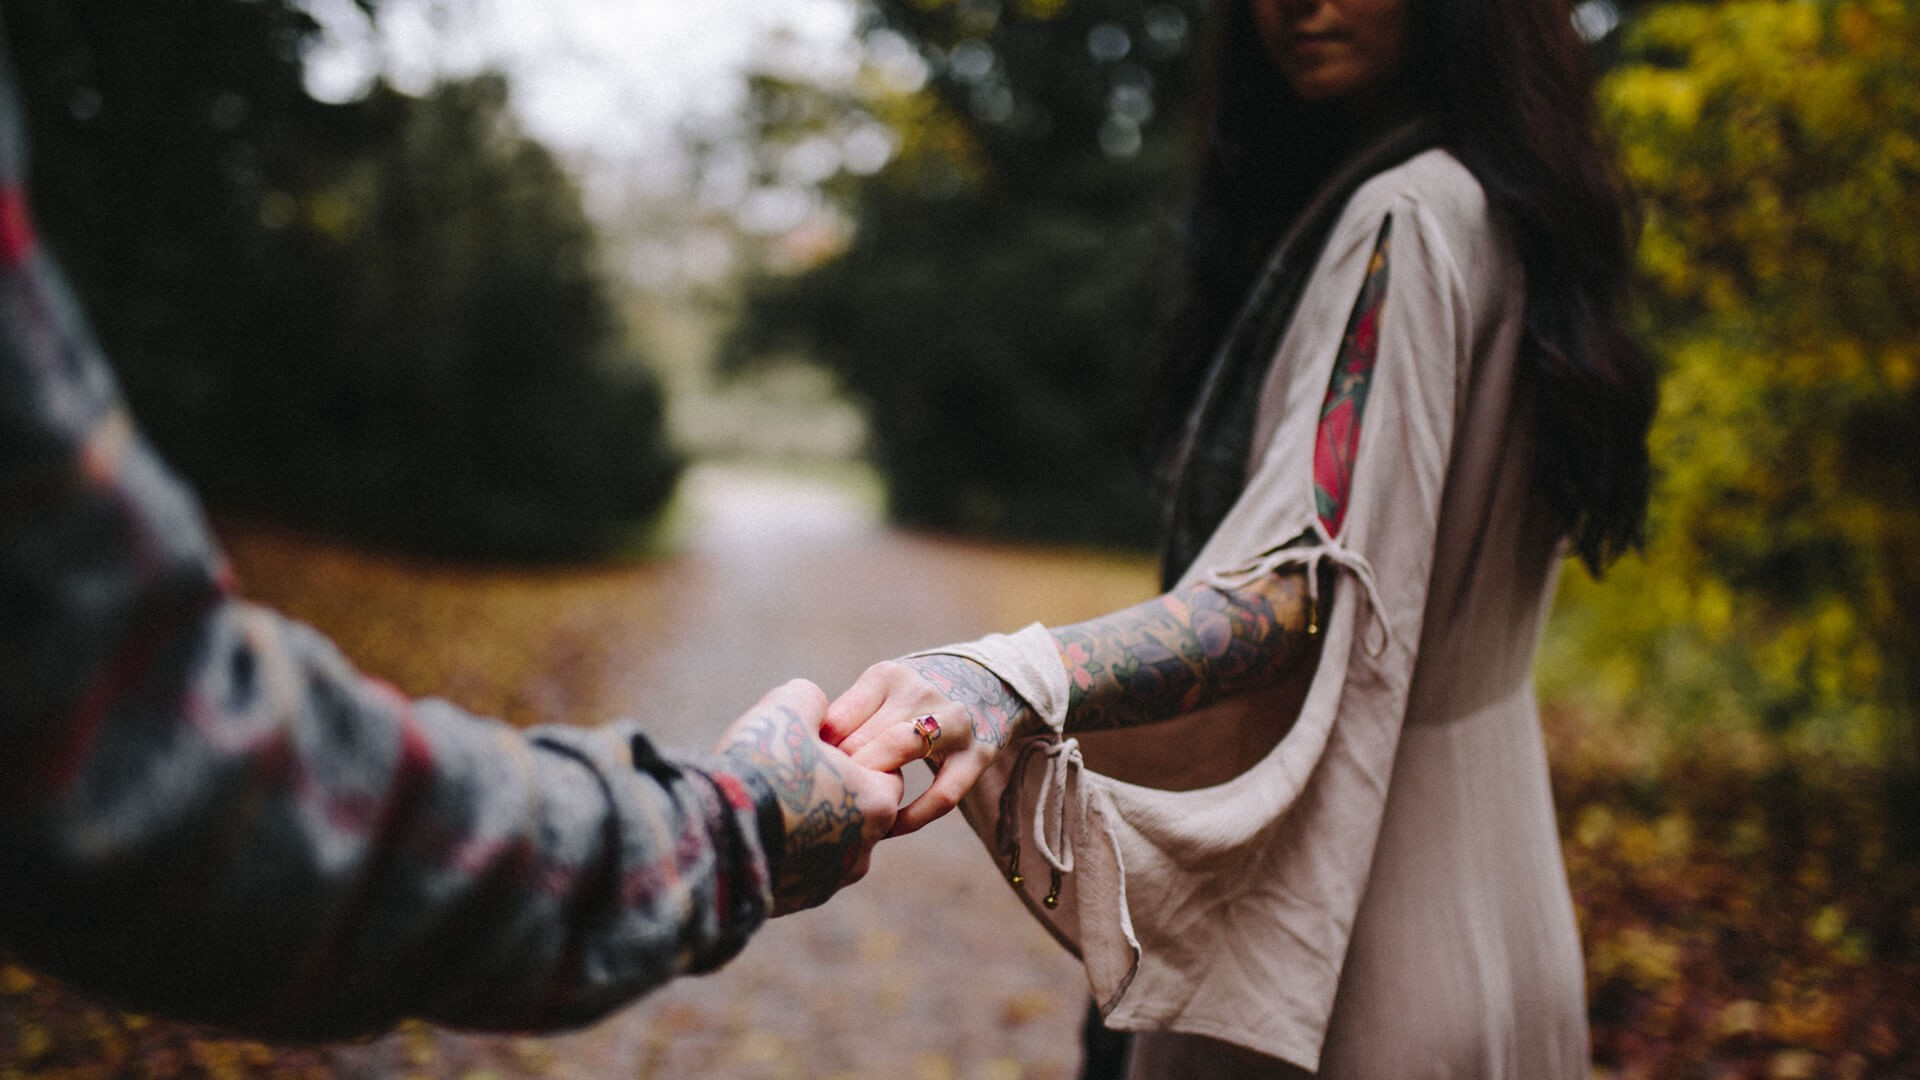 If you want to extend your relationship, stop doing these 6 things